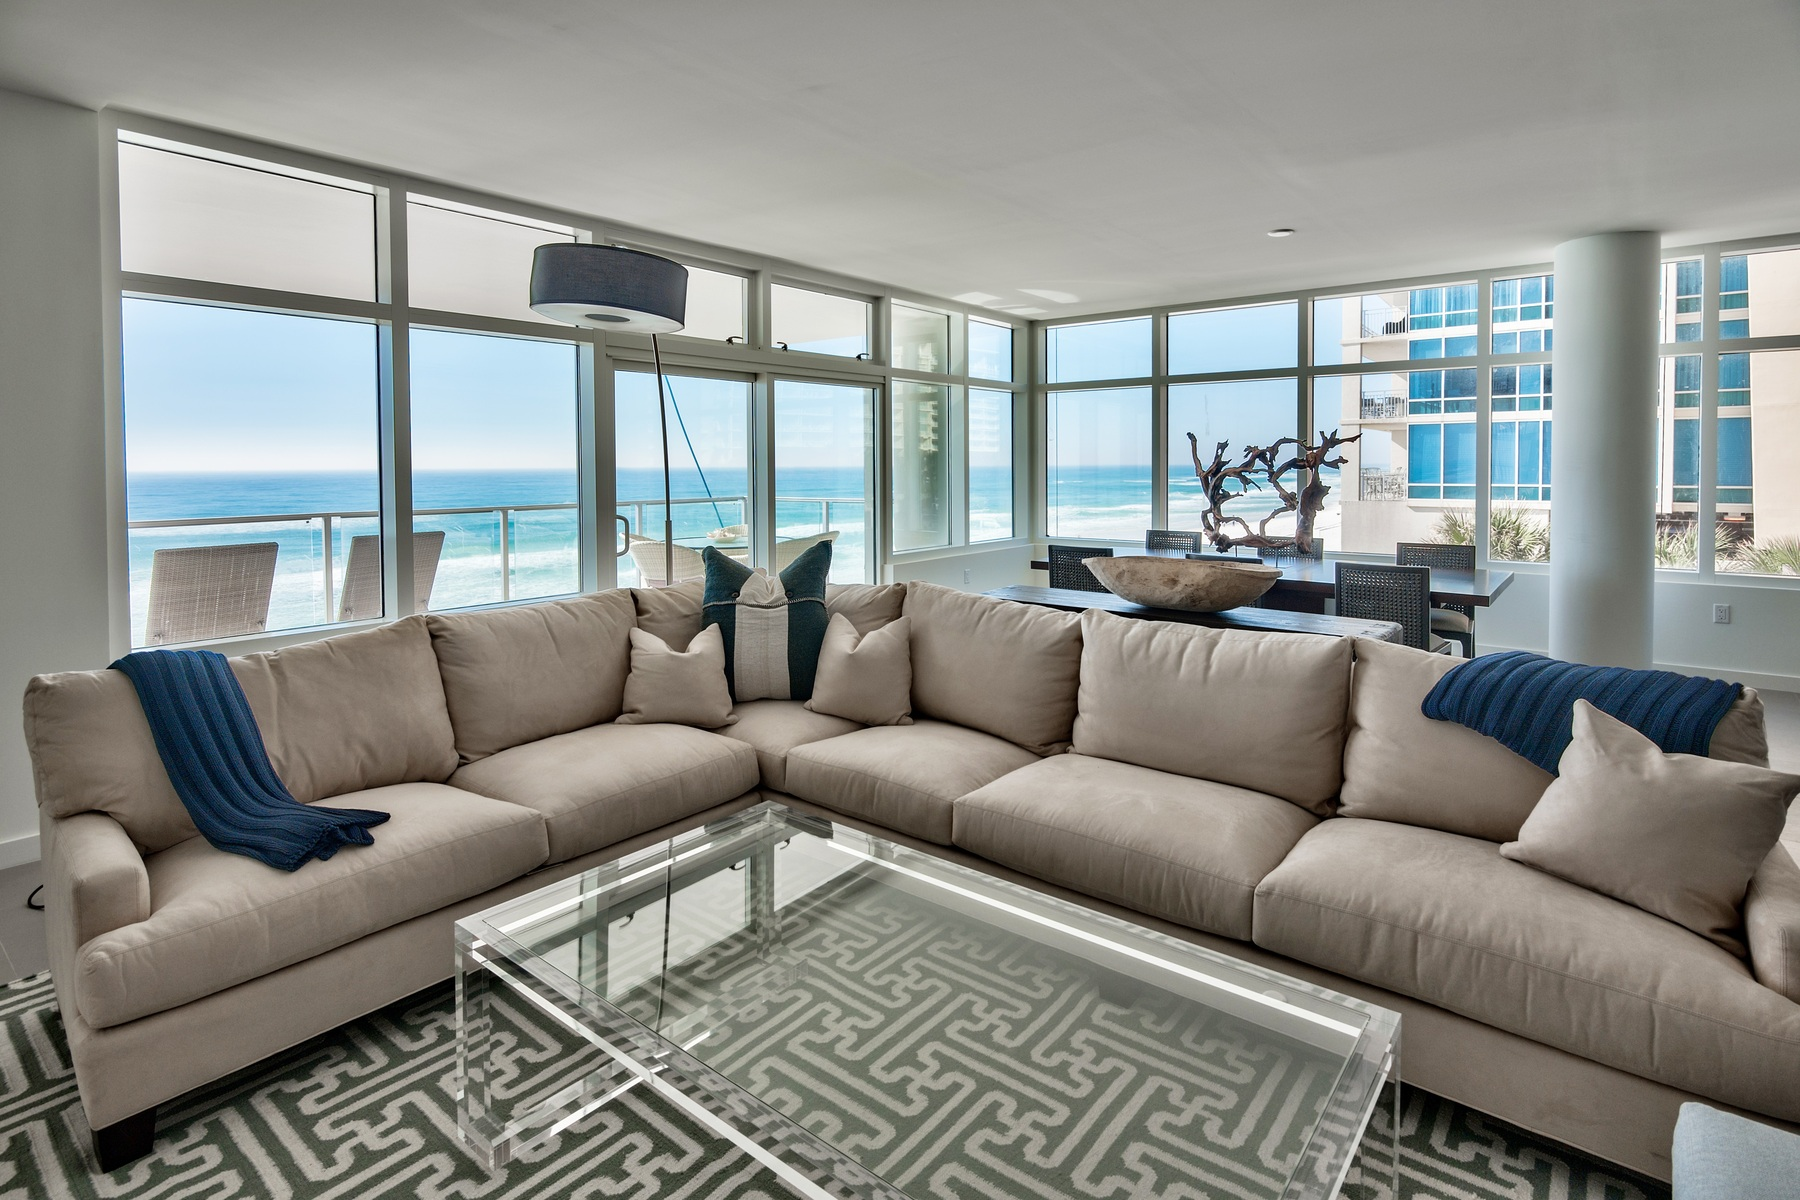 Condominio por un Venta en LUXURIOUS PRE-CONSTRUCTION OPPORTUNITY Destin, Florida, 32541 Estados Unidos